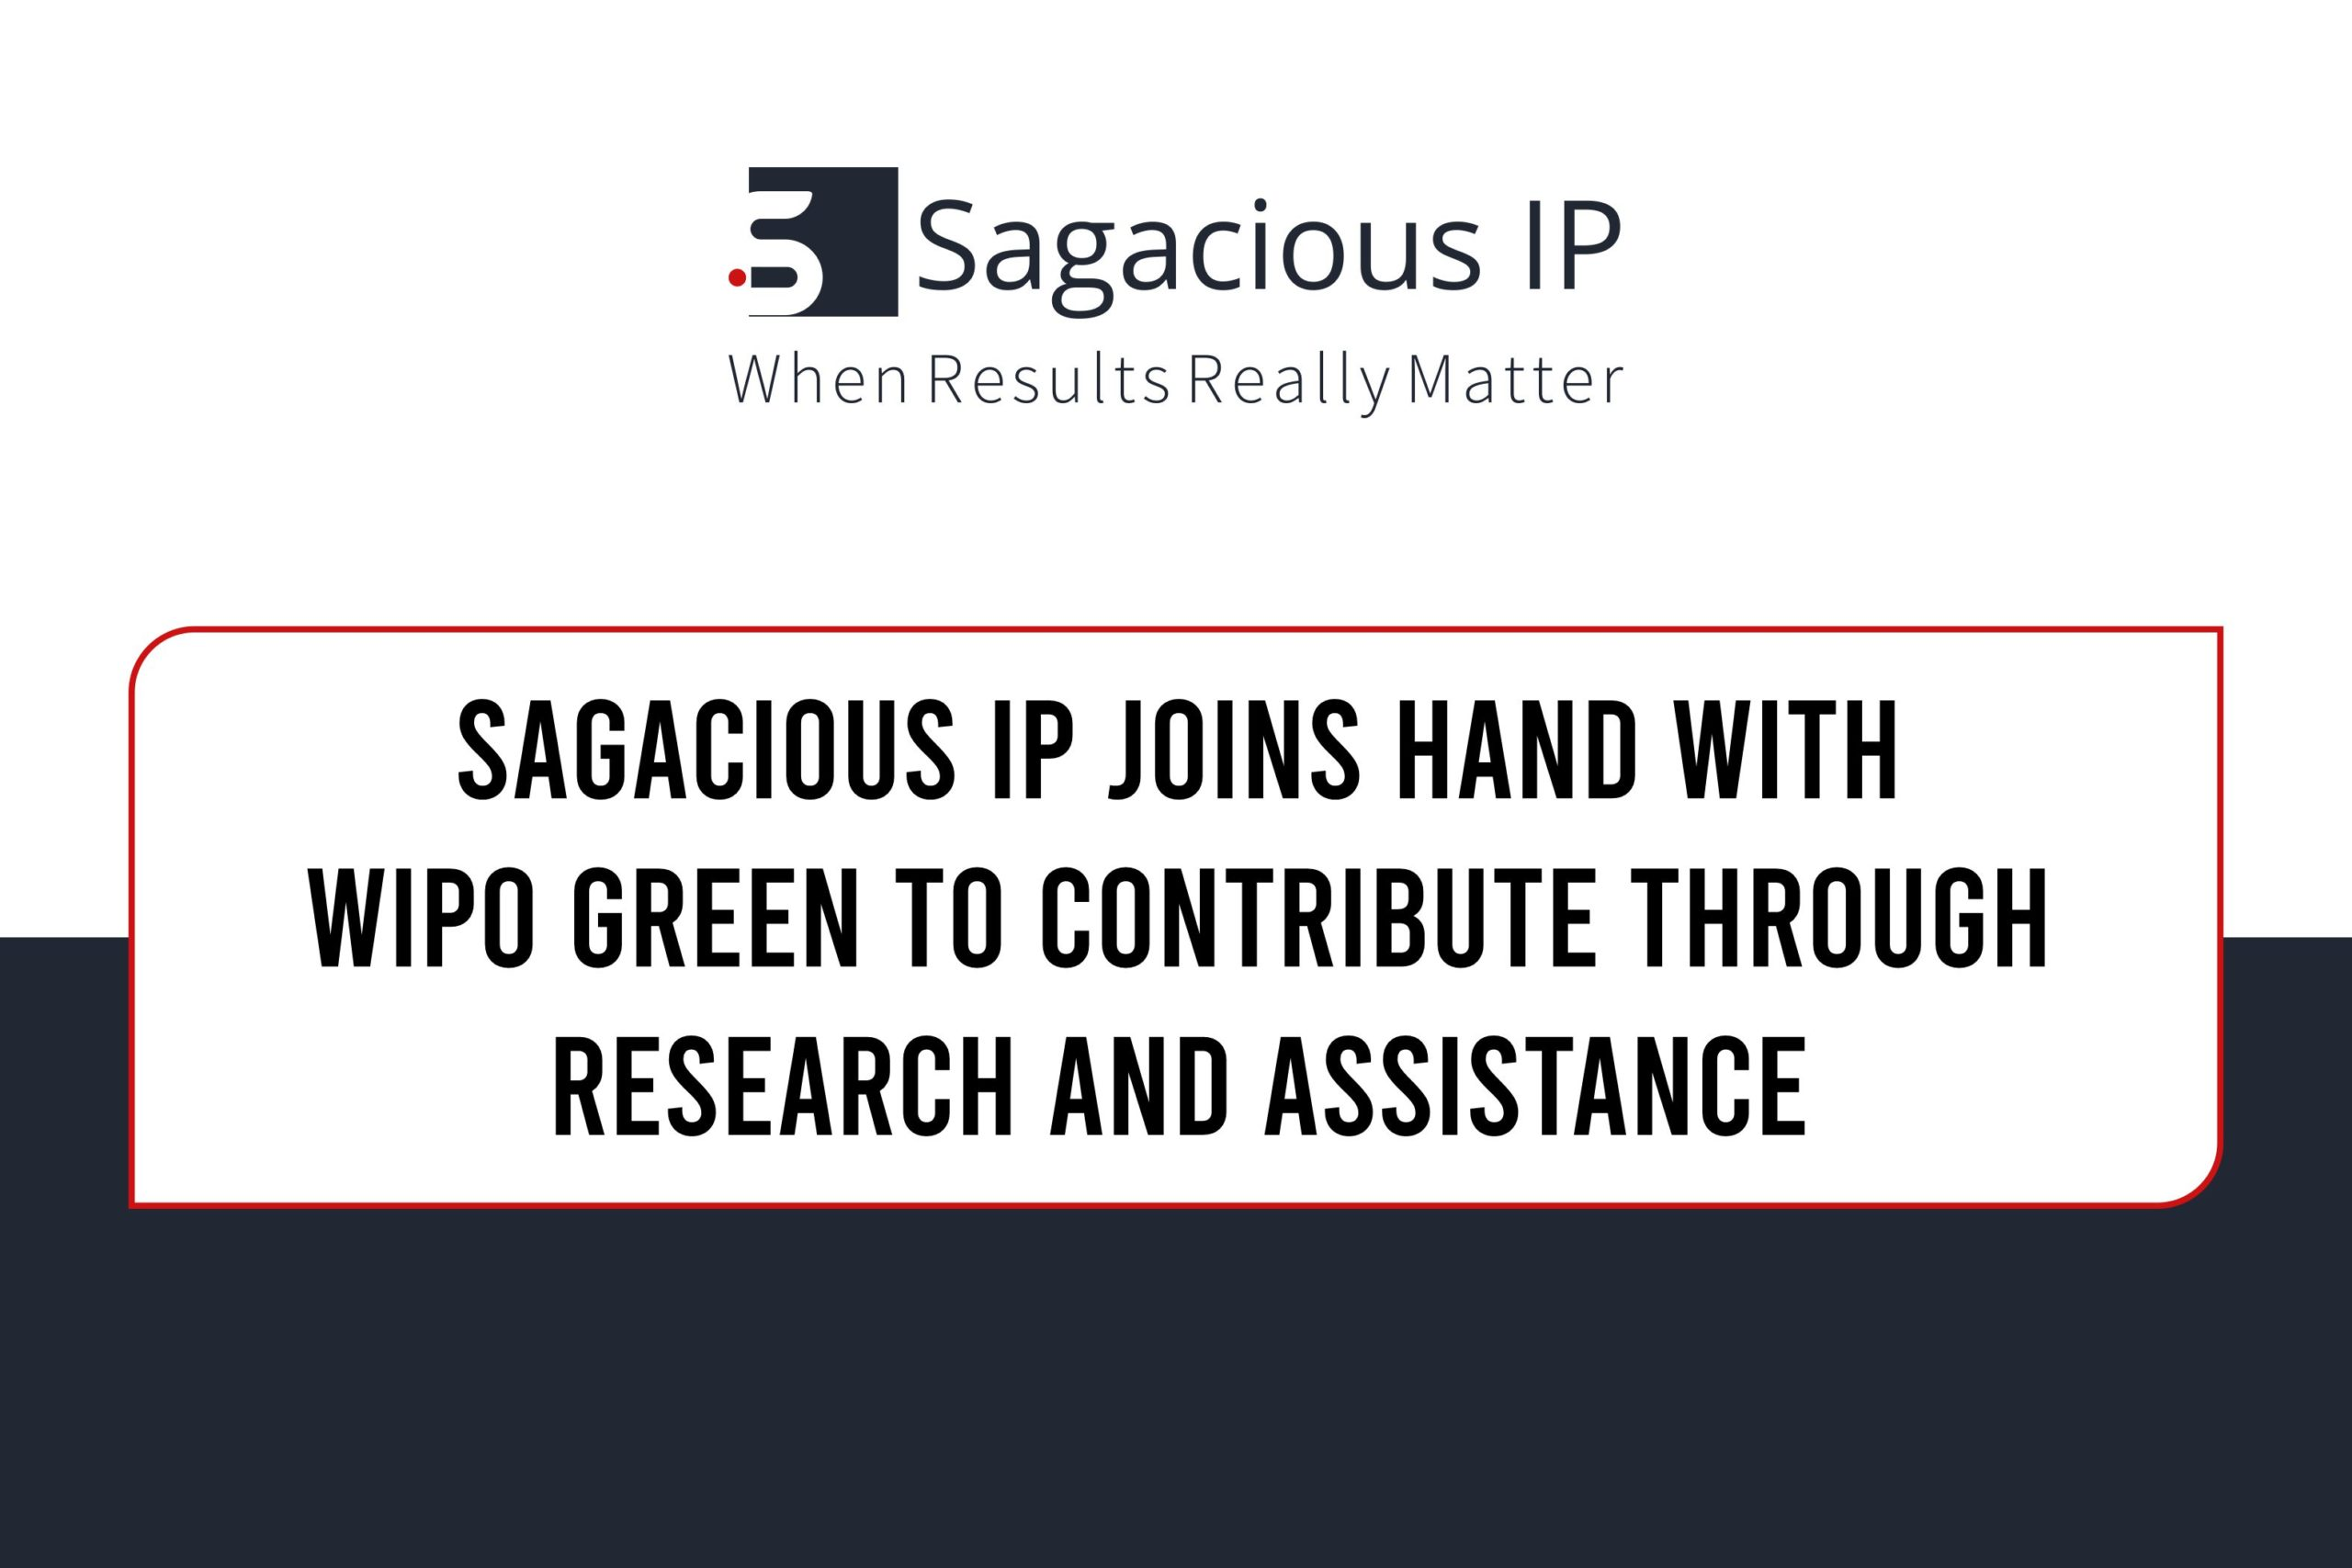 Sagacious IP & WIPO